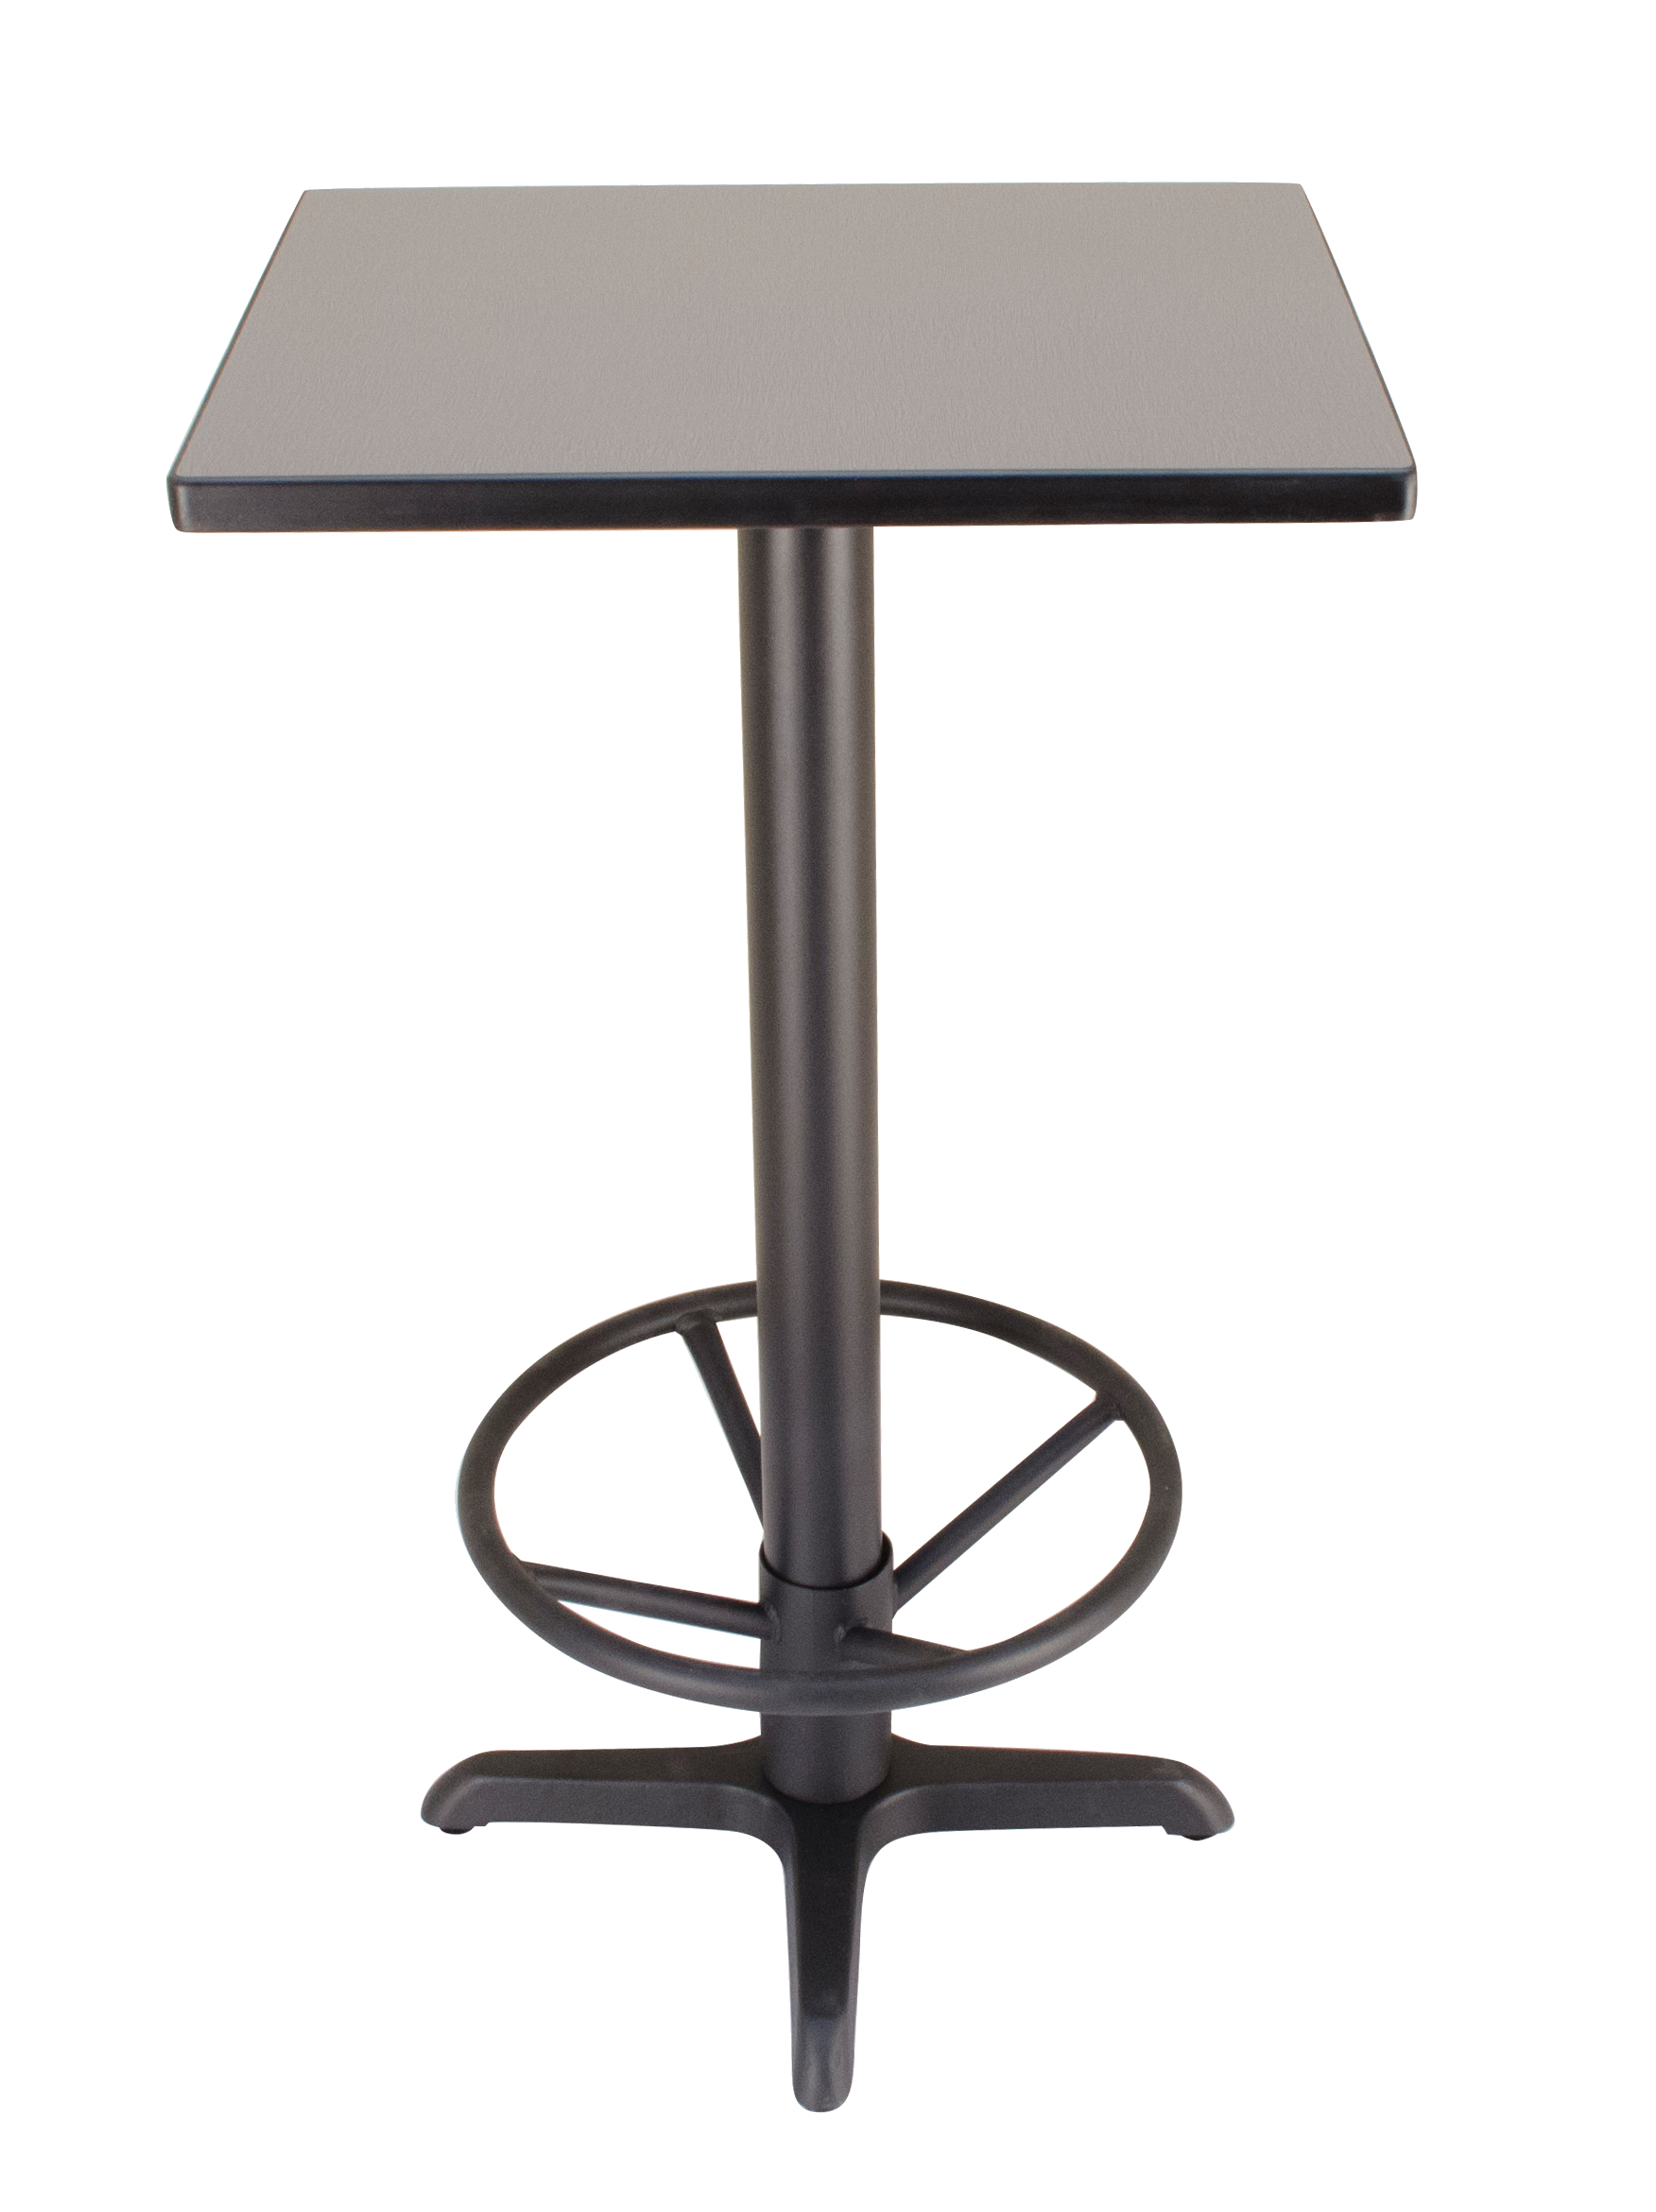 Plymold 30060TPD table top, laminate